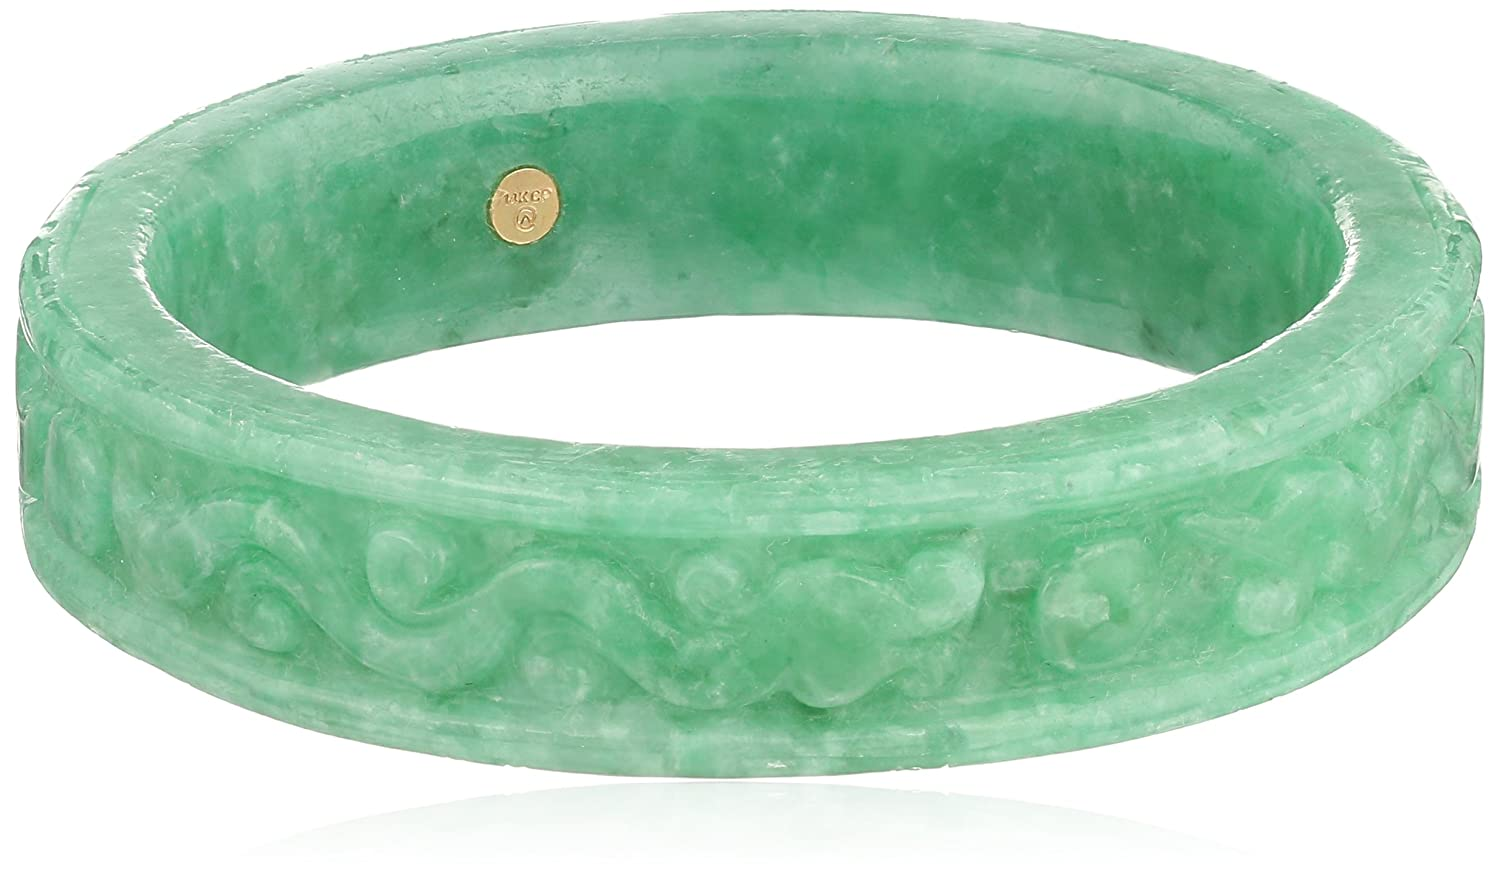 m bracelet certified img jadeite myanmar bangle green uni lid item natural stores color jad jade a genuine